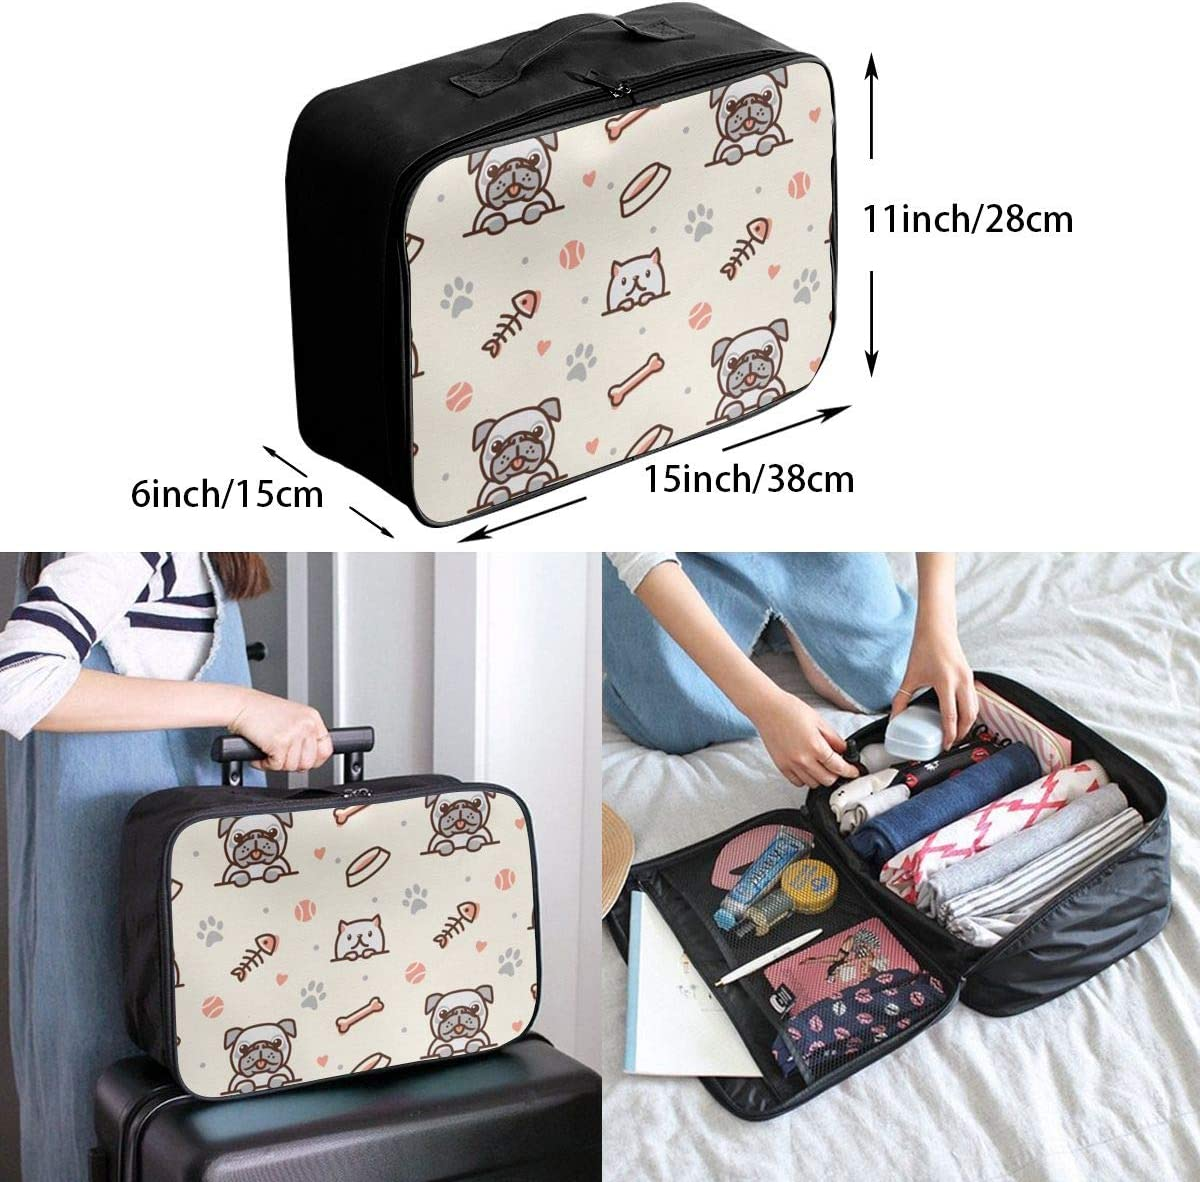 Beautiful Powerful Confident Exotic Woman Travel Carry-on Luggage Weekender Bag Overnight Tote Flight Duffel In Trolley Handle